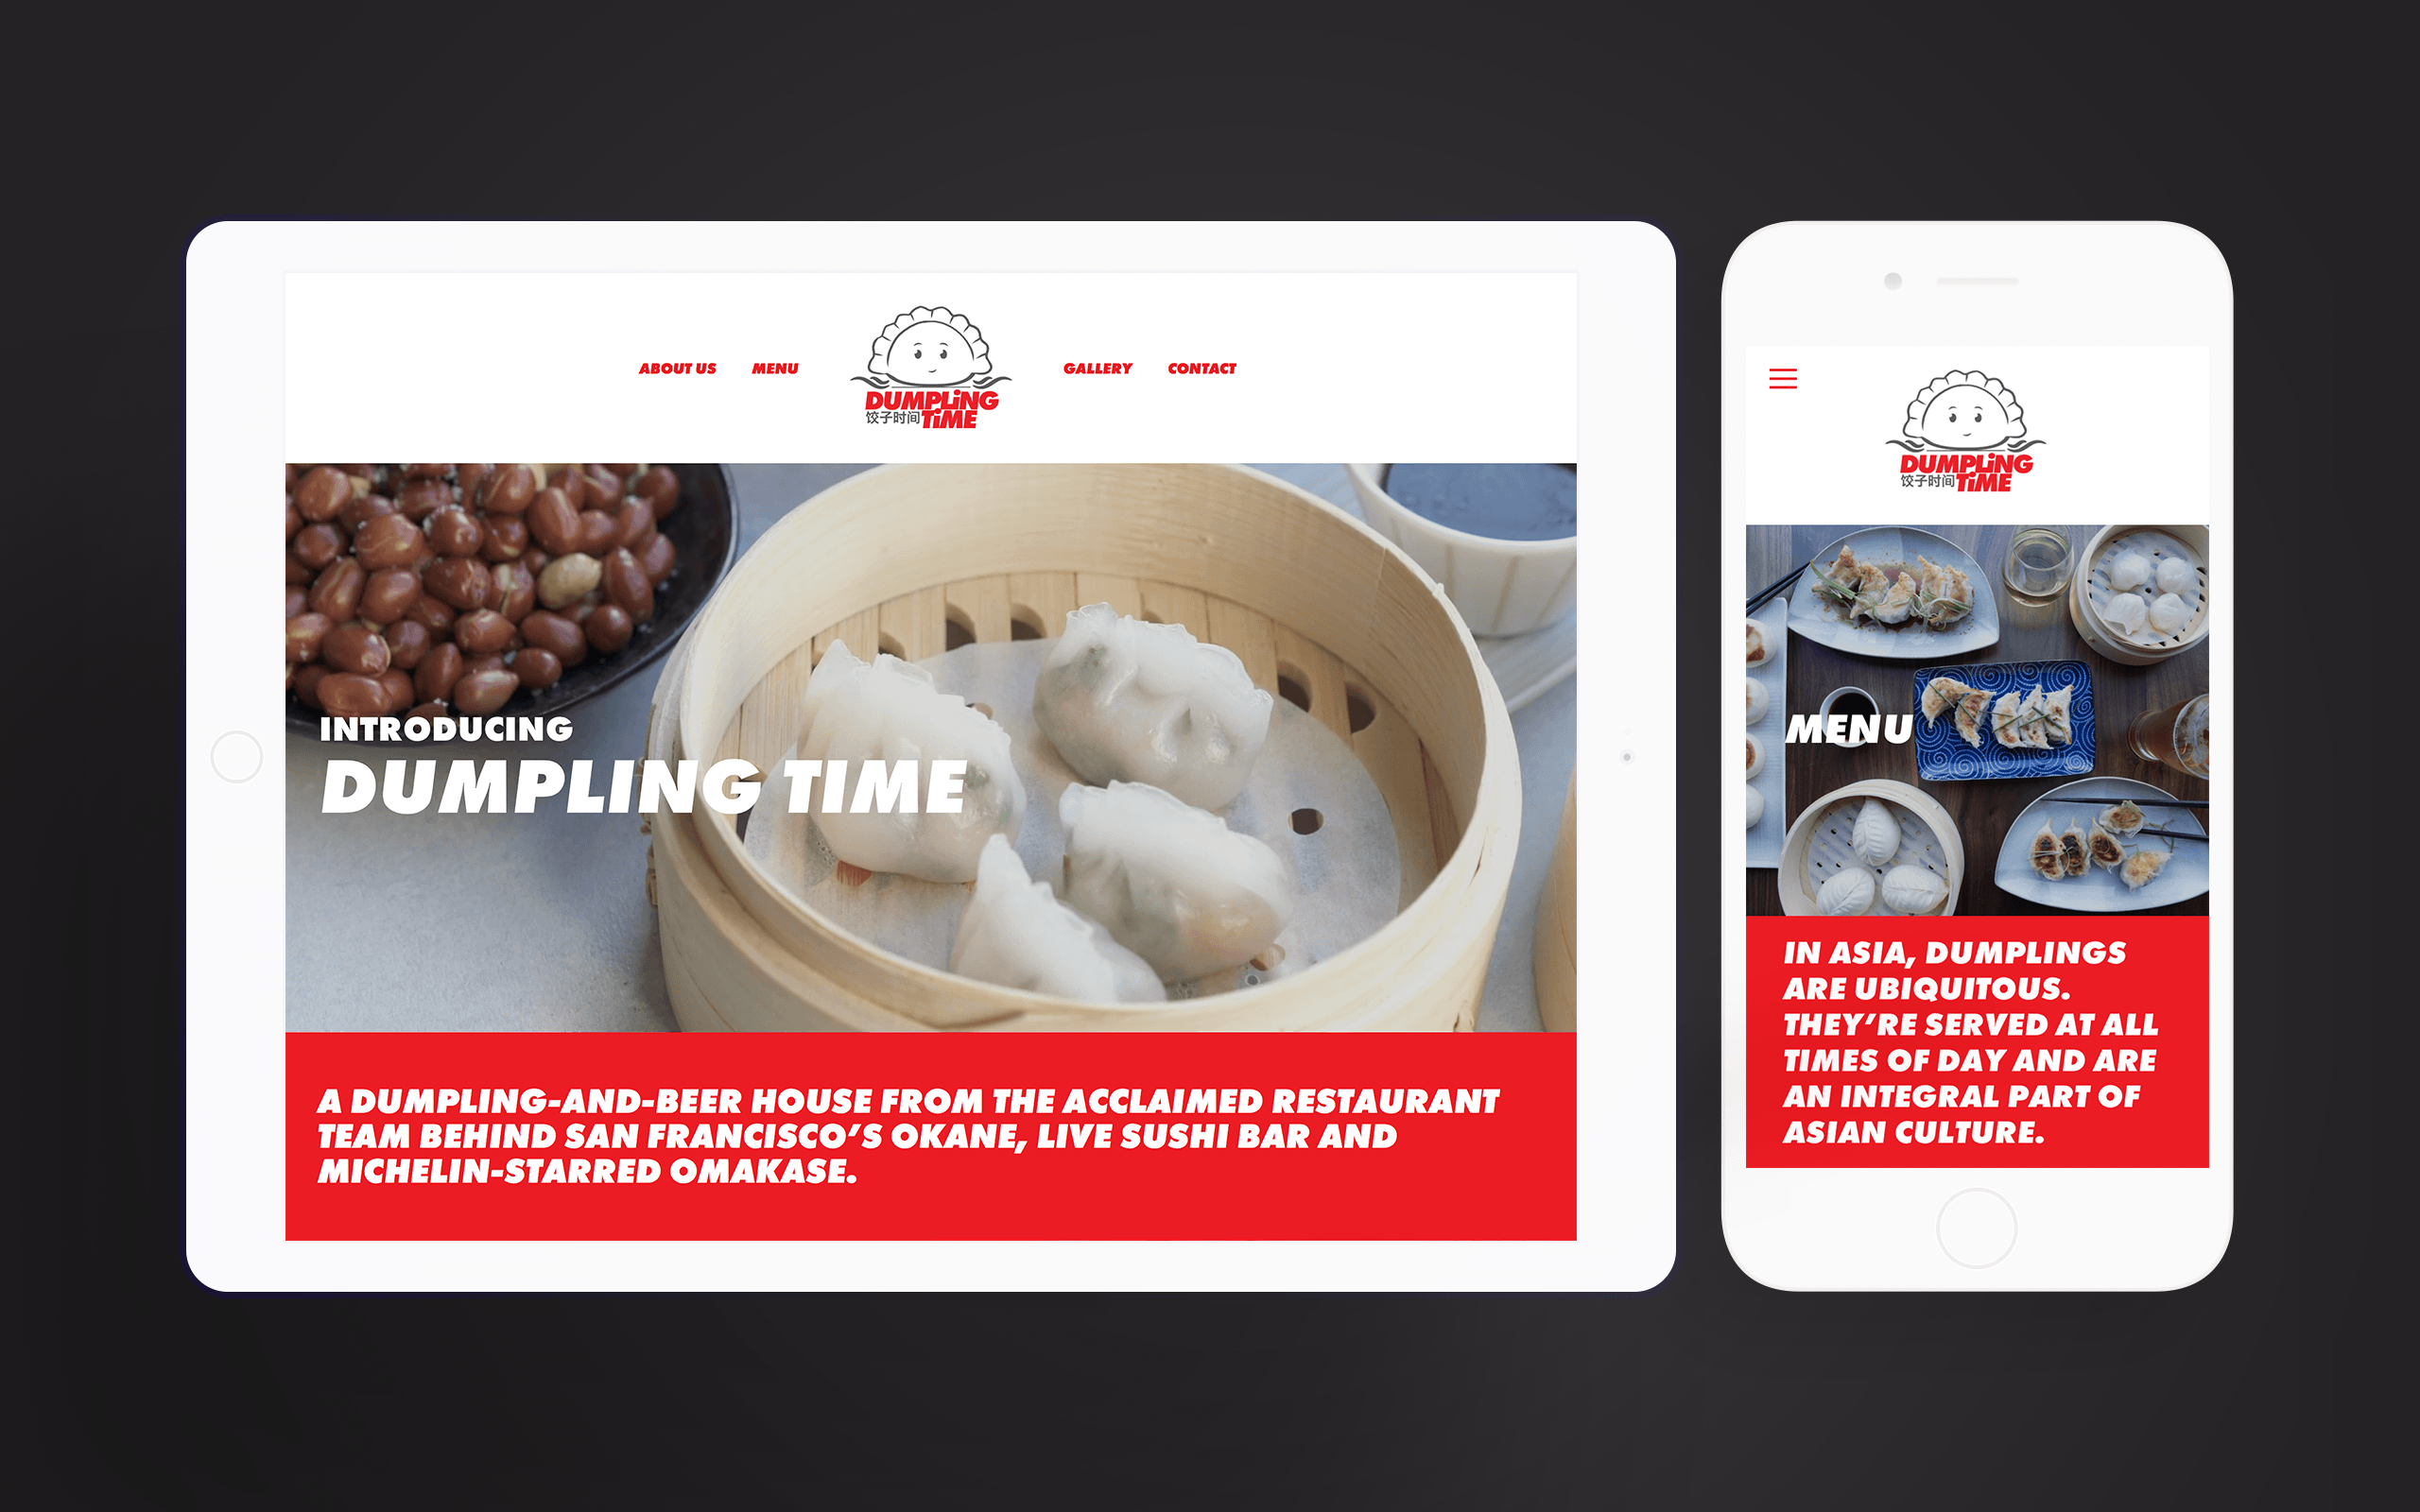 omakase-dumpling-time-mobile-tablet